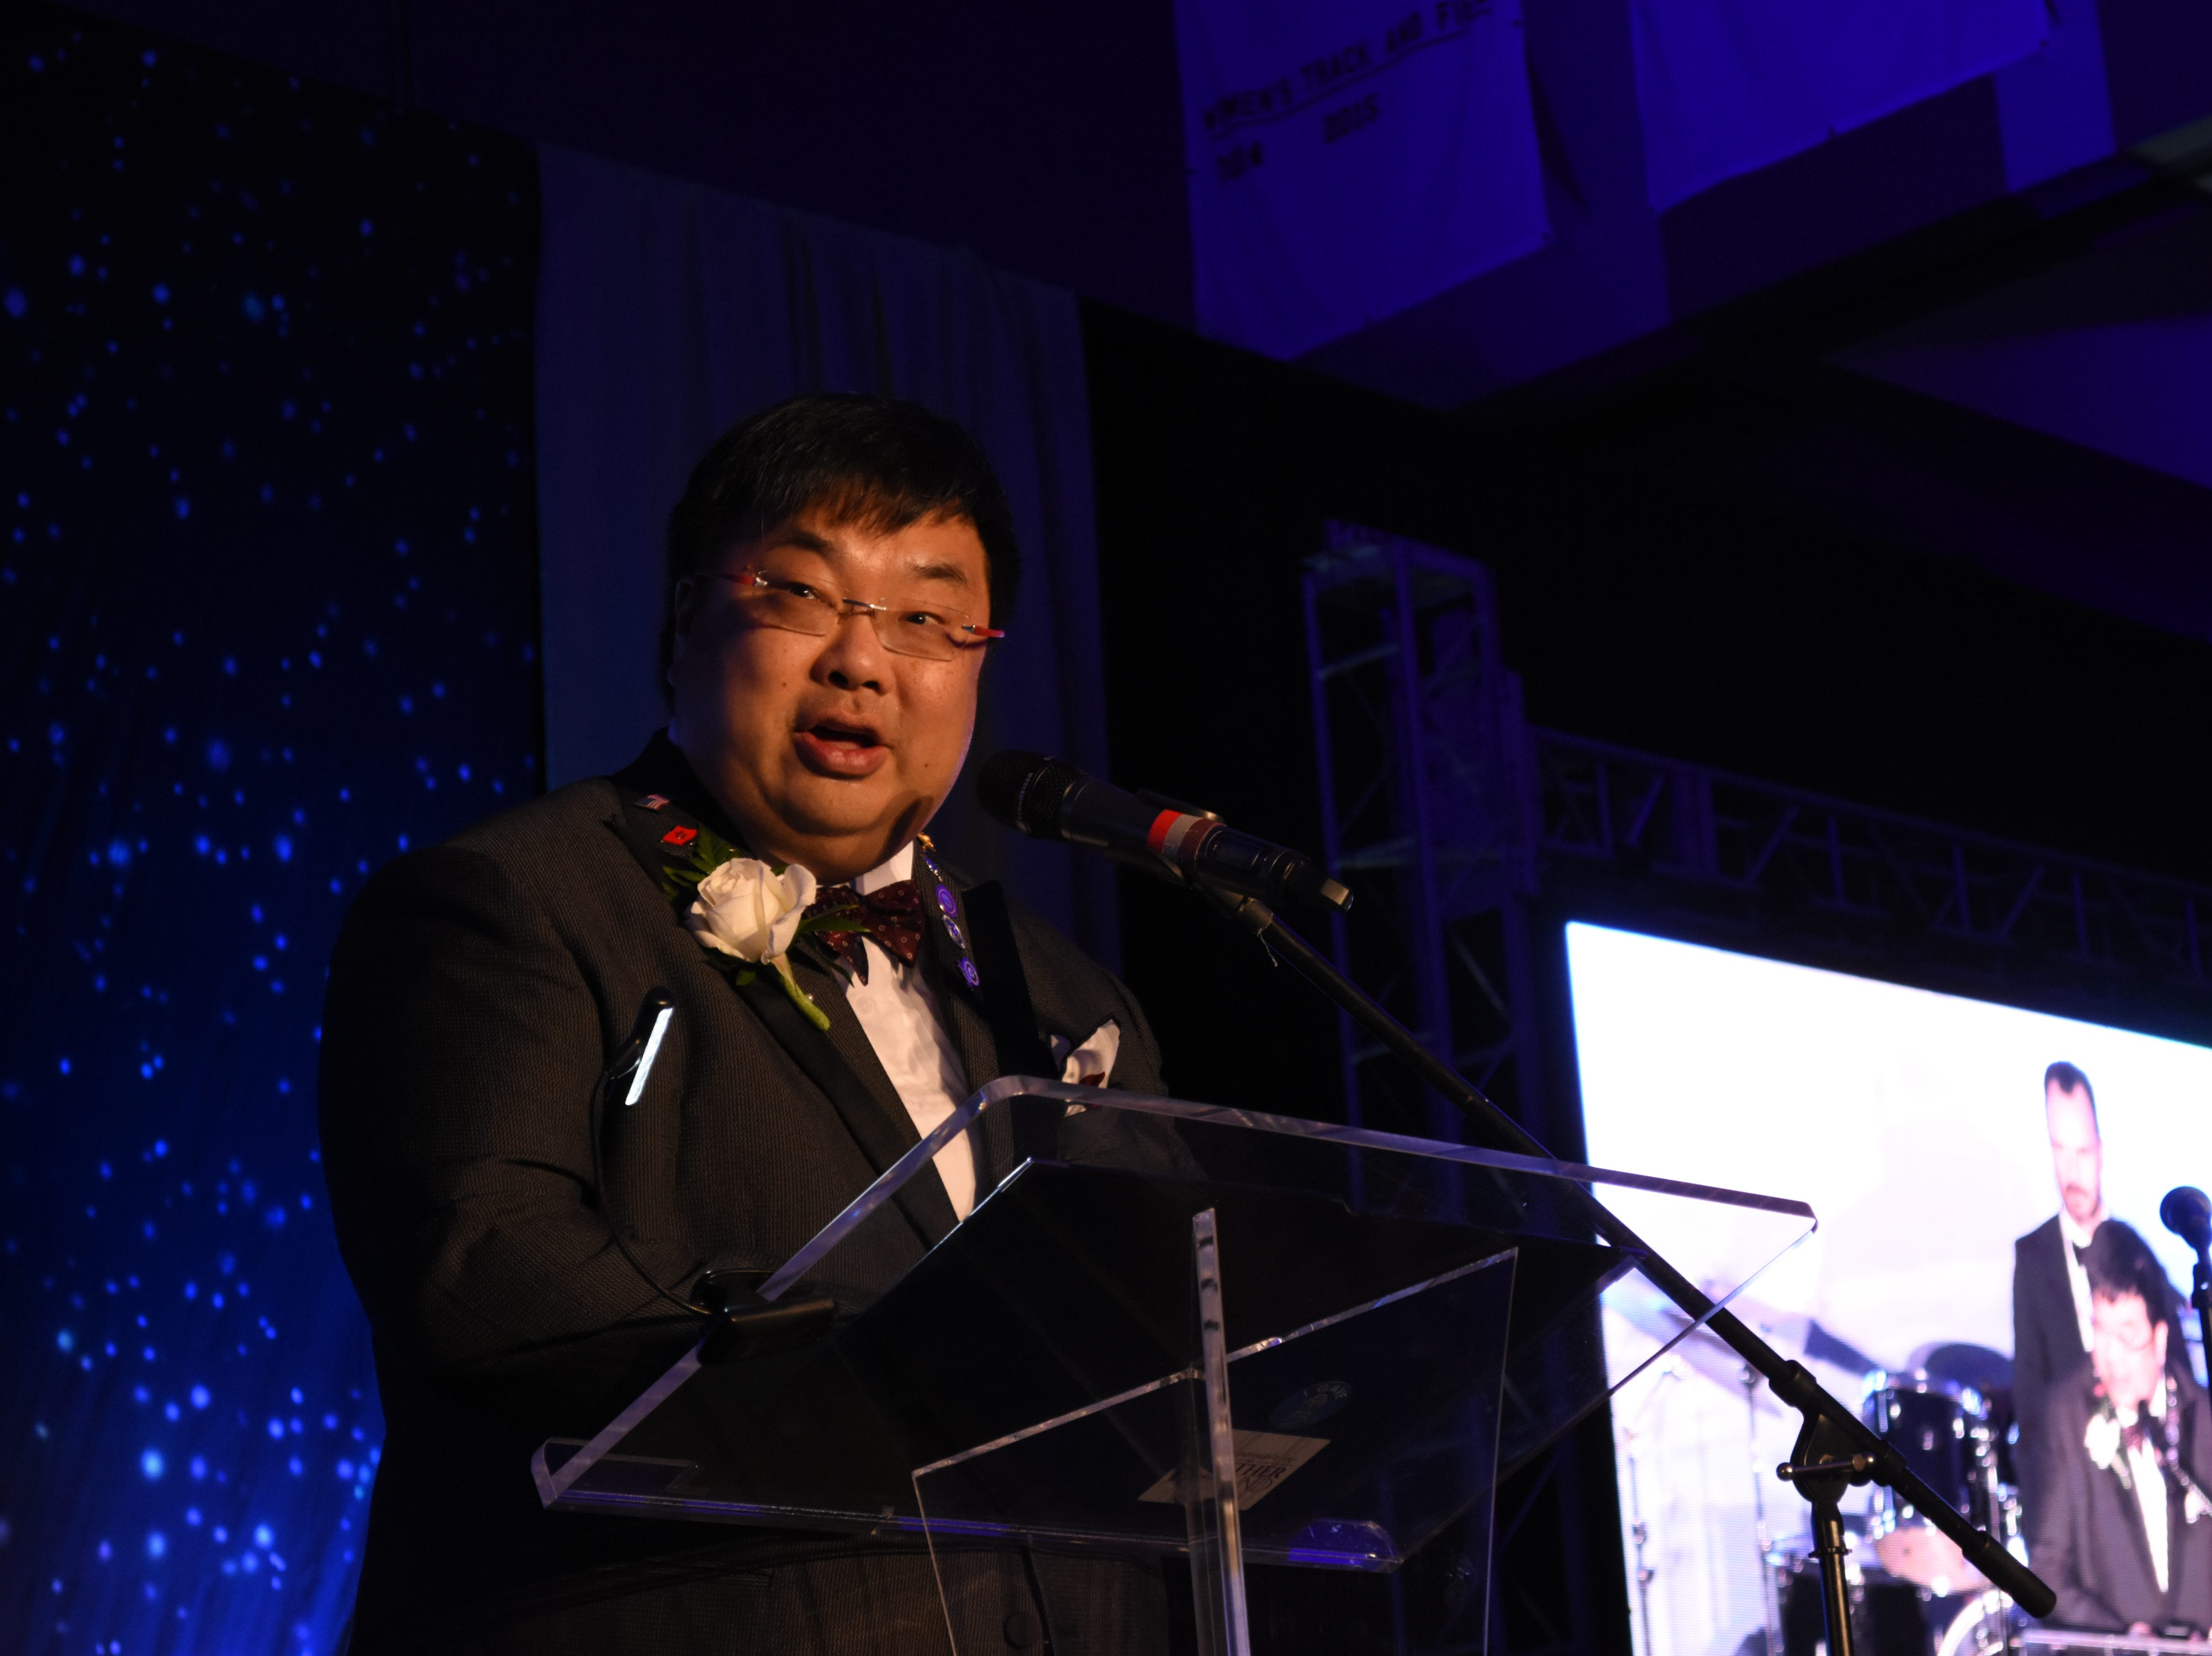 College of Business Outstanding Alumni award winner James Wong speaks to the crowd at Florida Tech's 60th Anniversary Homecoming Gala Oct. 13, 2018, at the Clemente Center.